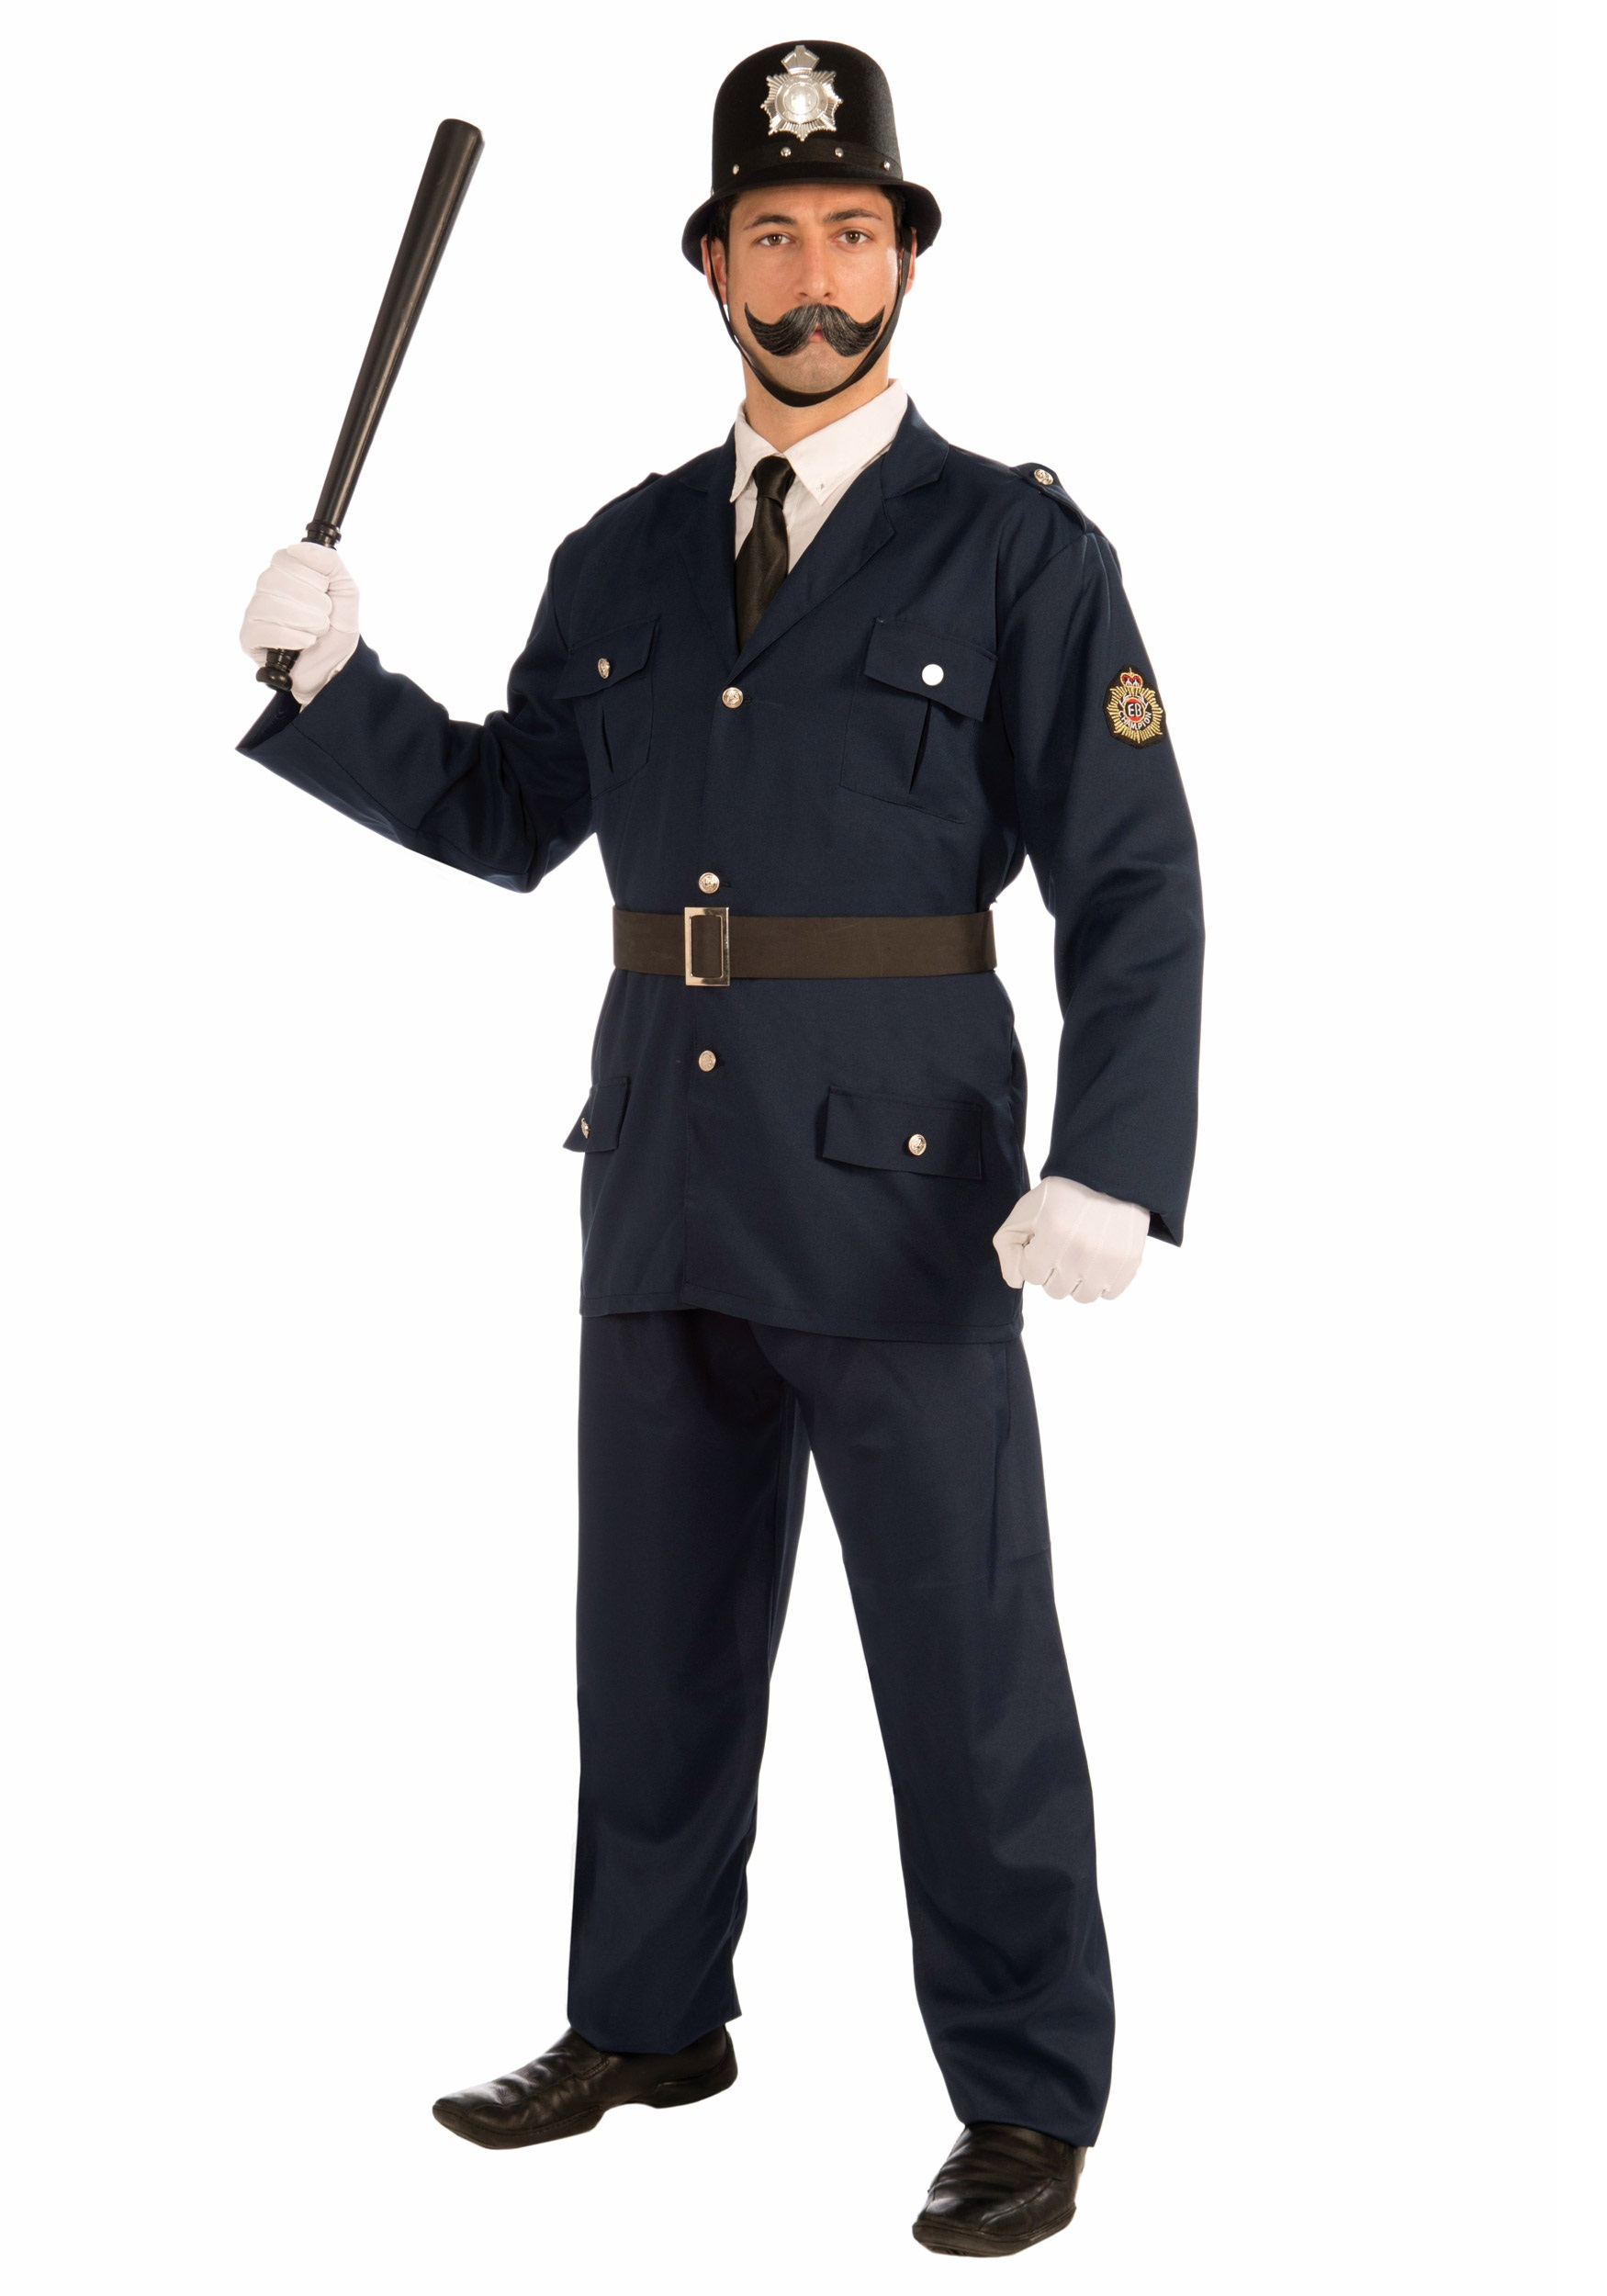 INOpets.com Anything for Pets Parents & Their Pets Keystone Cop Fancy Dress Costume